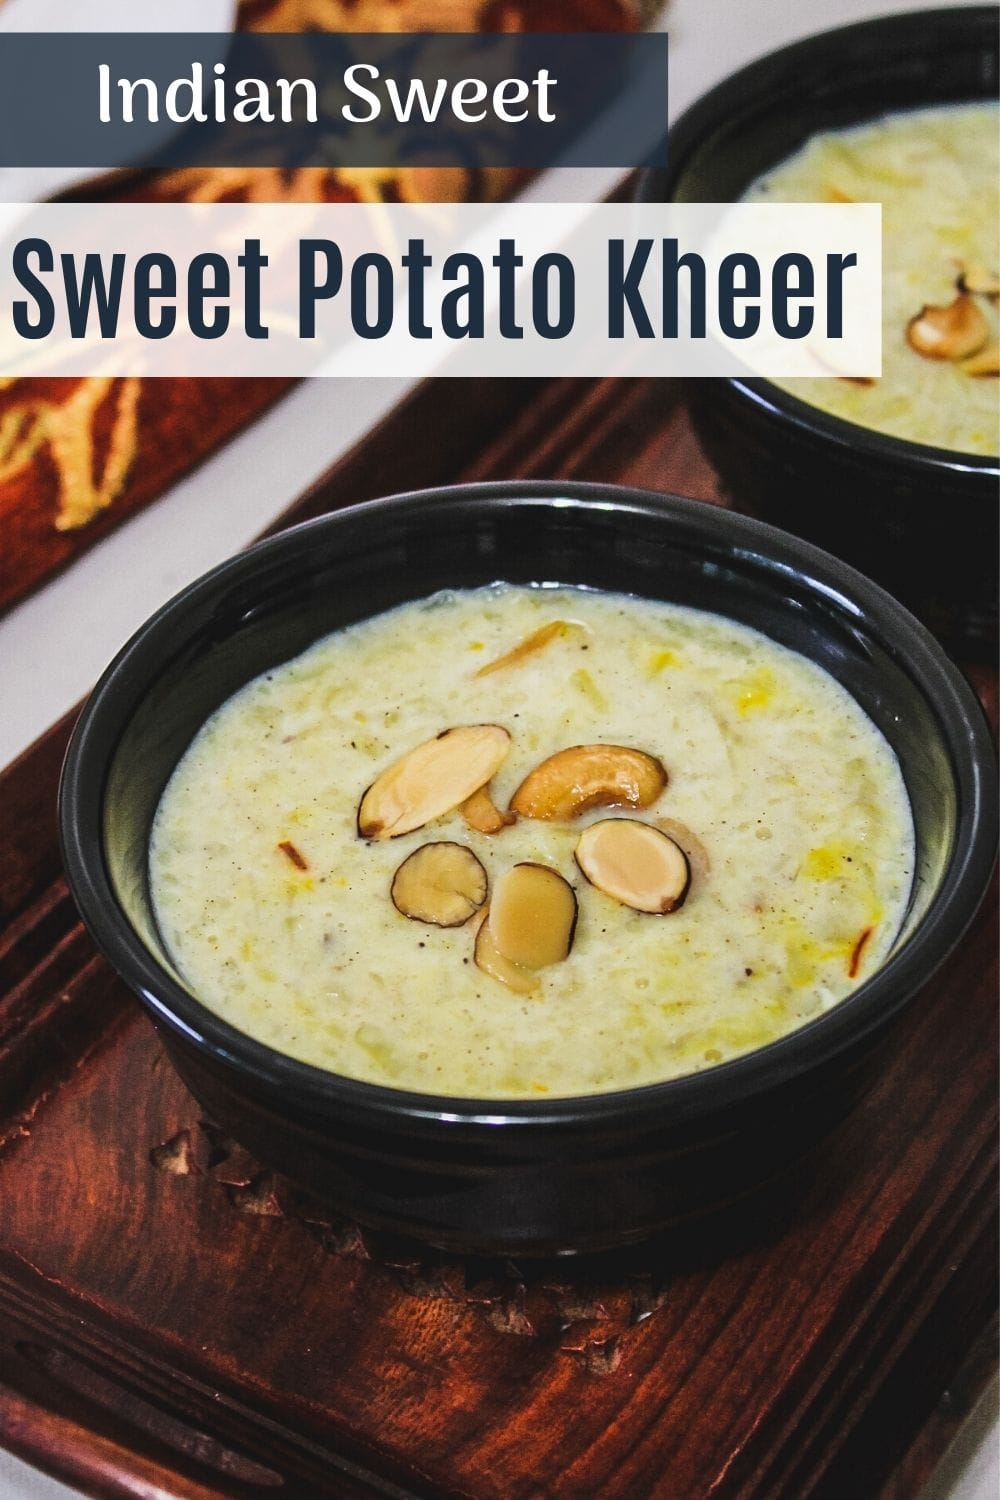 sweet potato kheer in a bowl with text on top of the image for pinterest